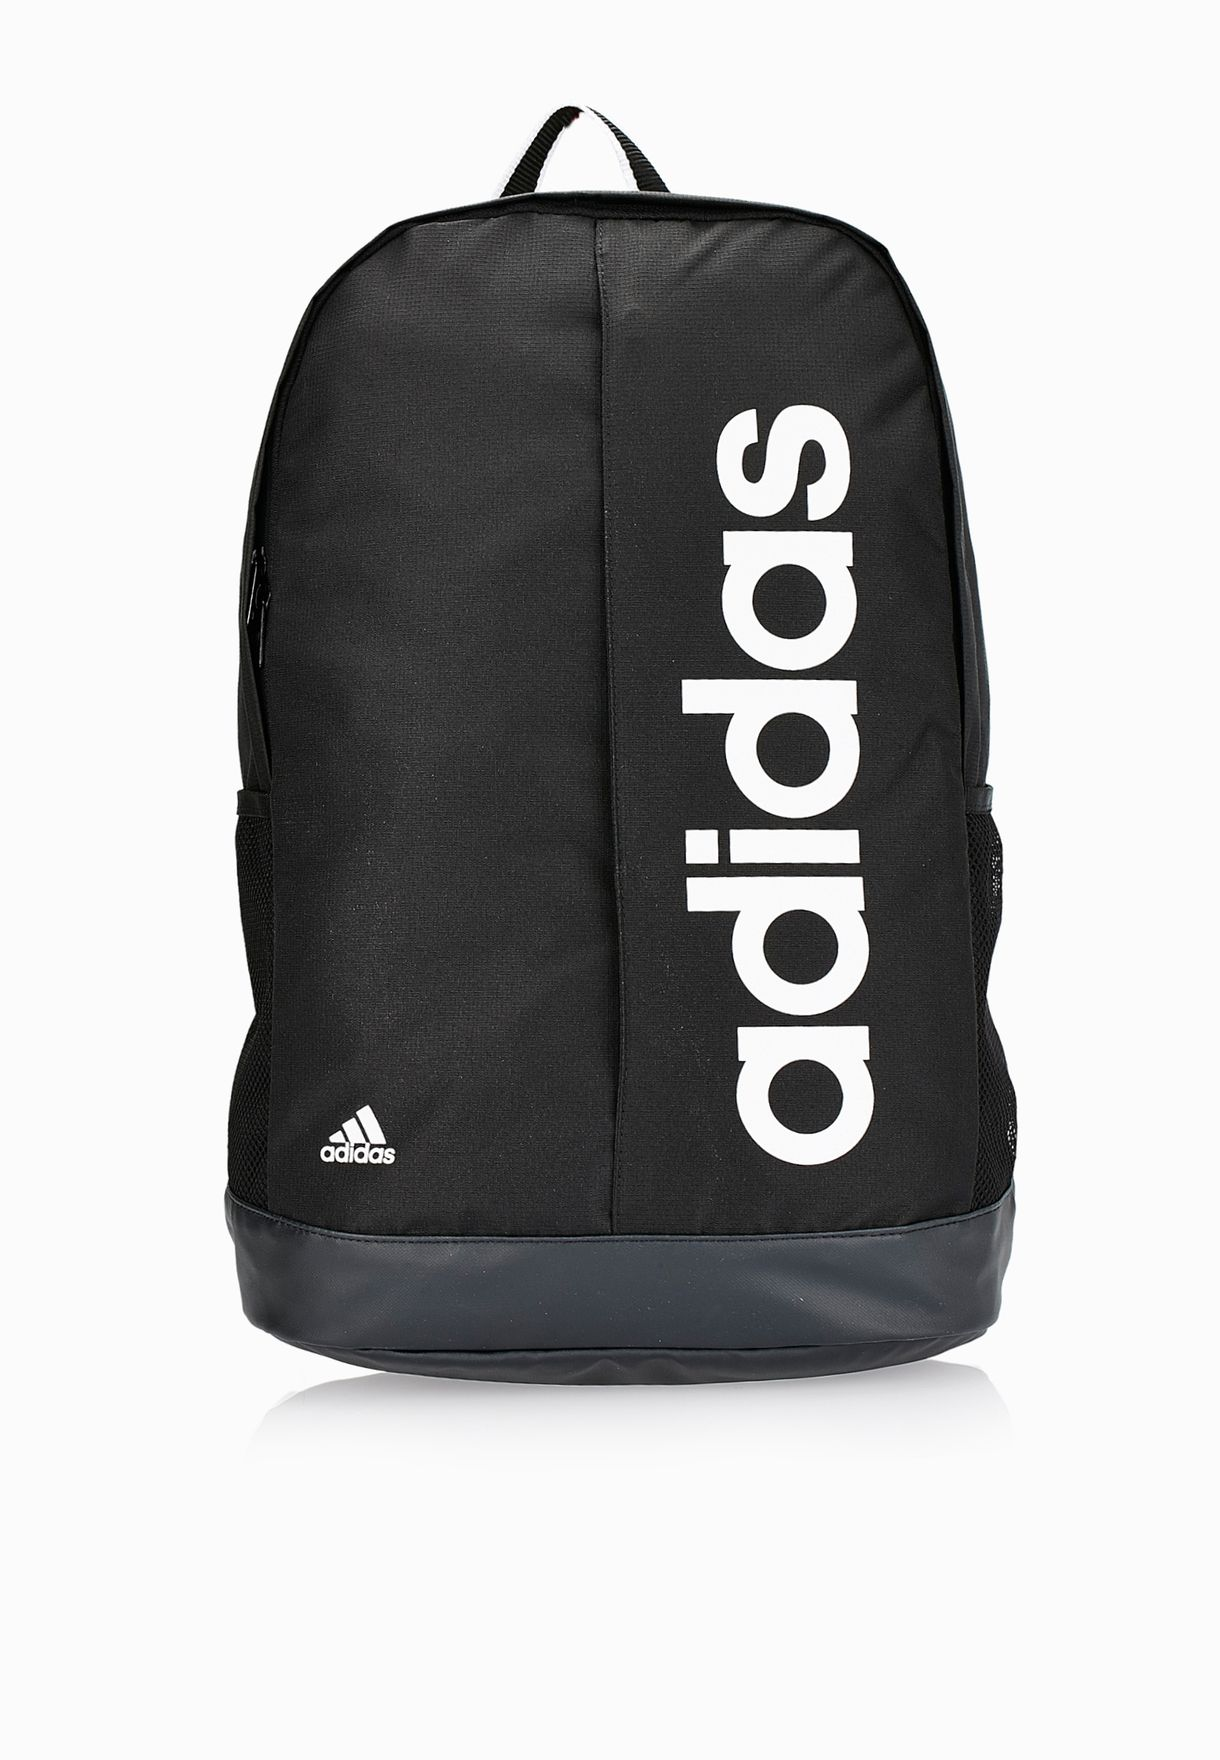 Shop adidas black Linear Performance Backpack AJ9936 for Men in Bahrain -  AD476AC46FPX b8d8769aac8fe